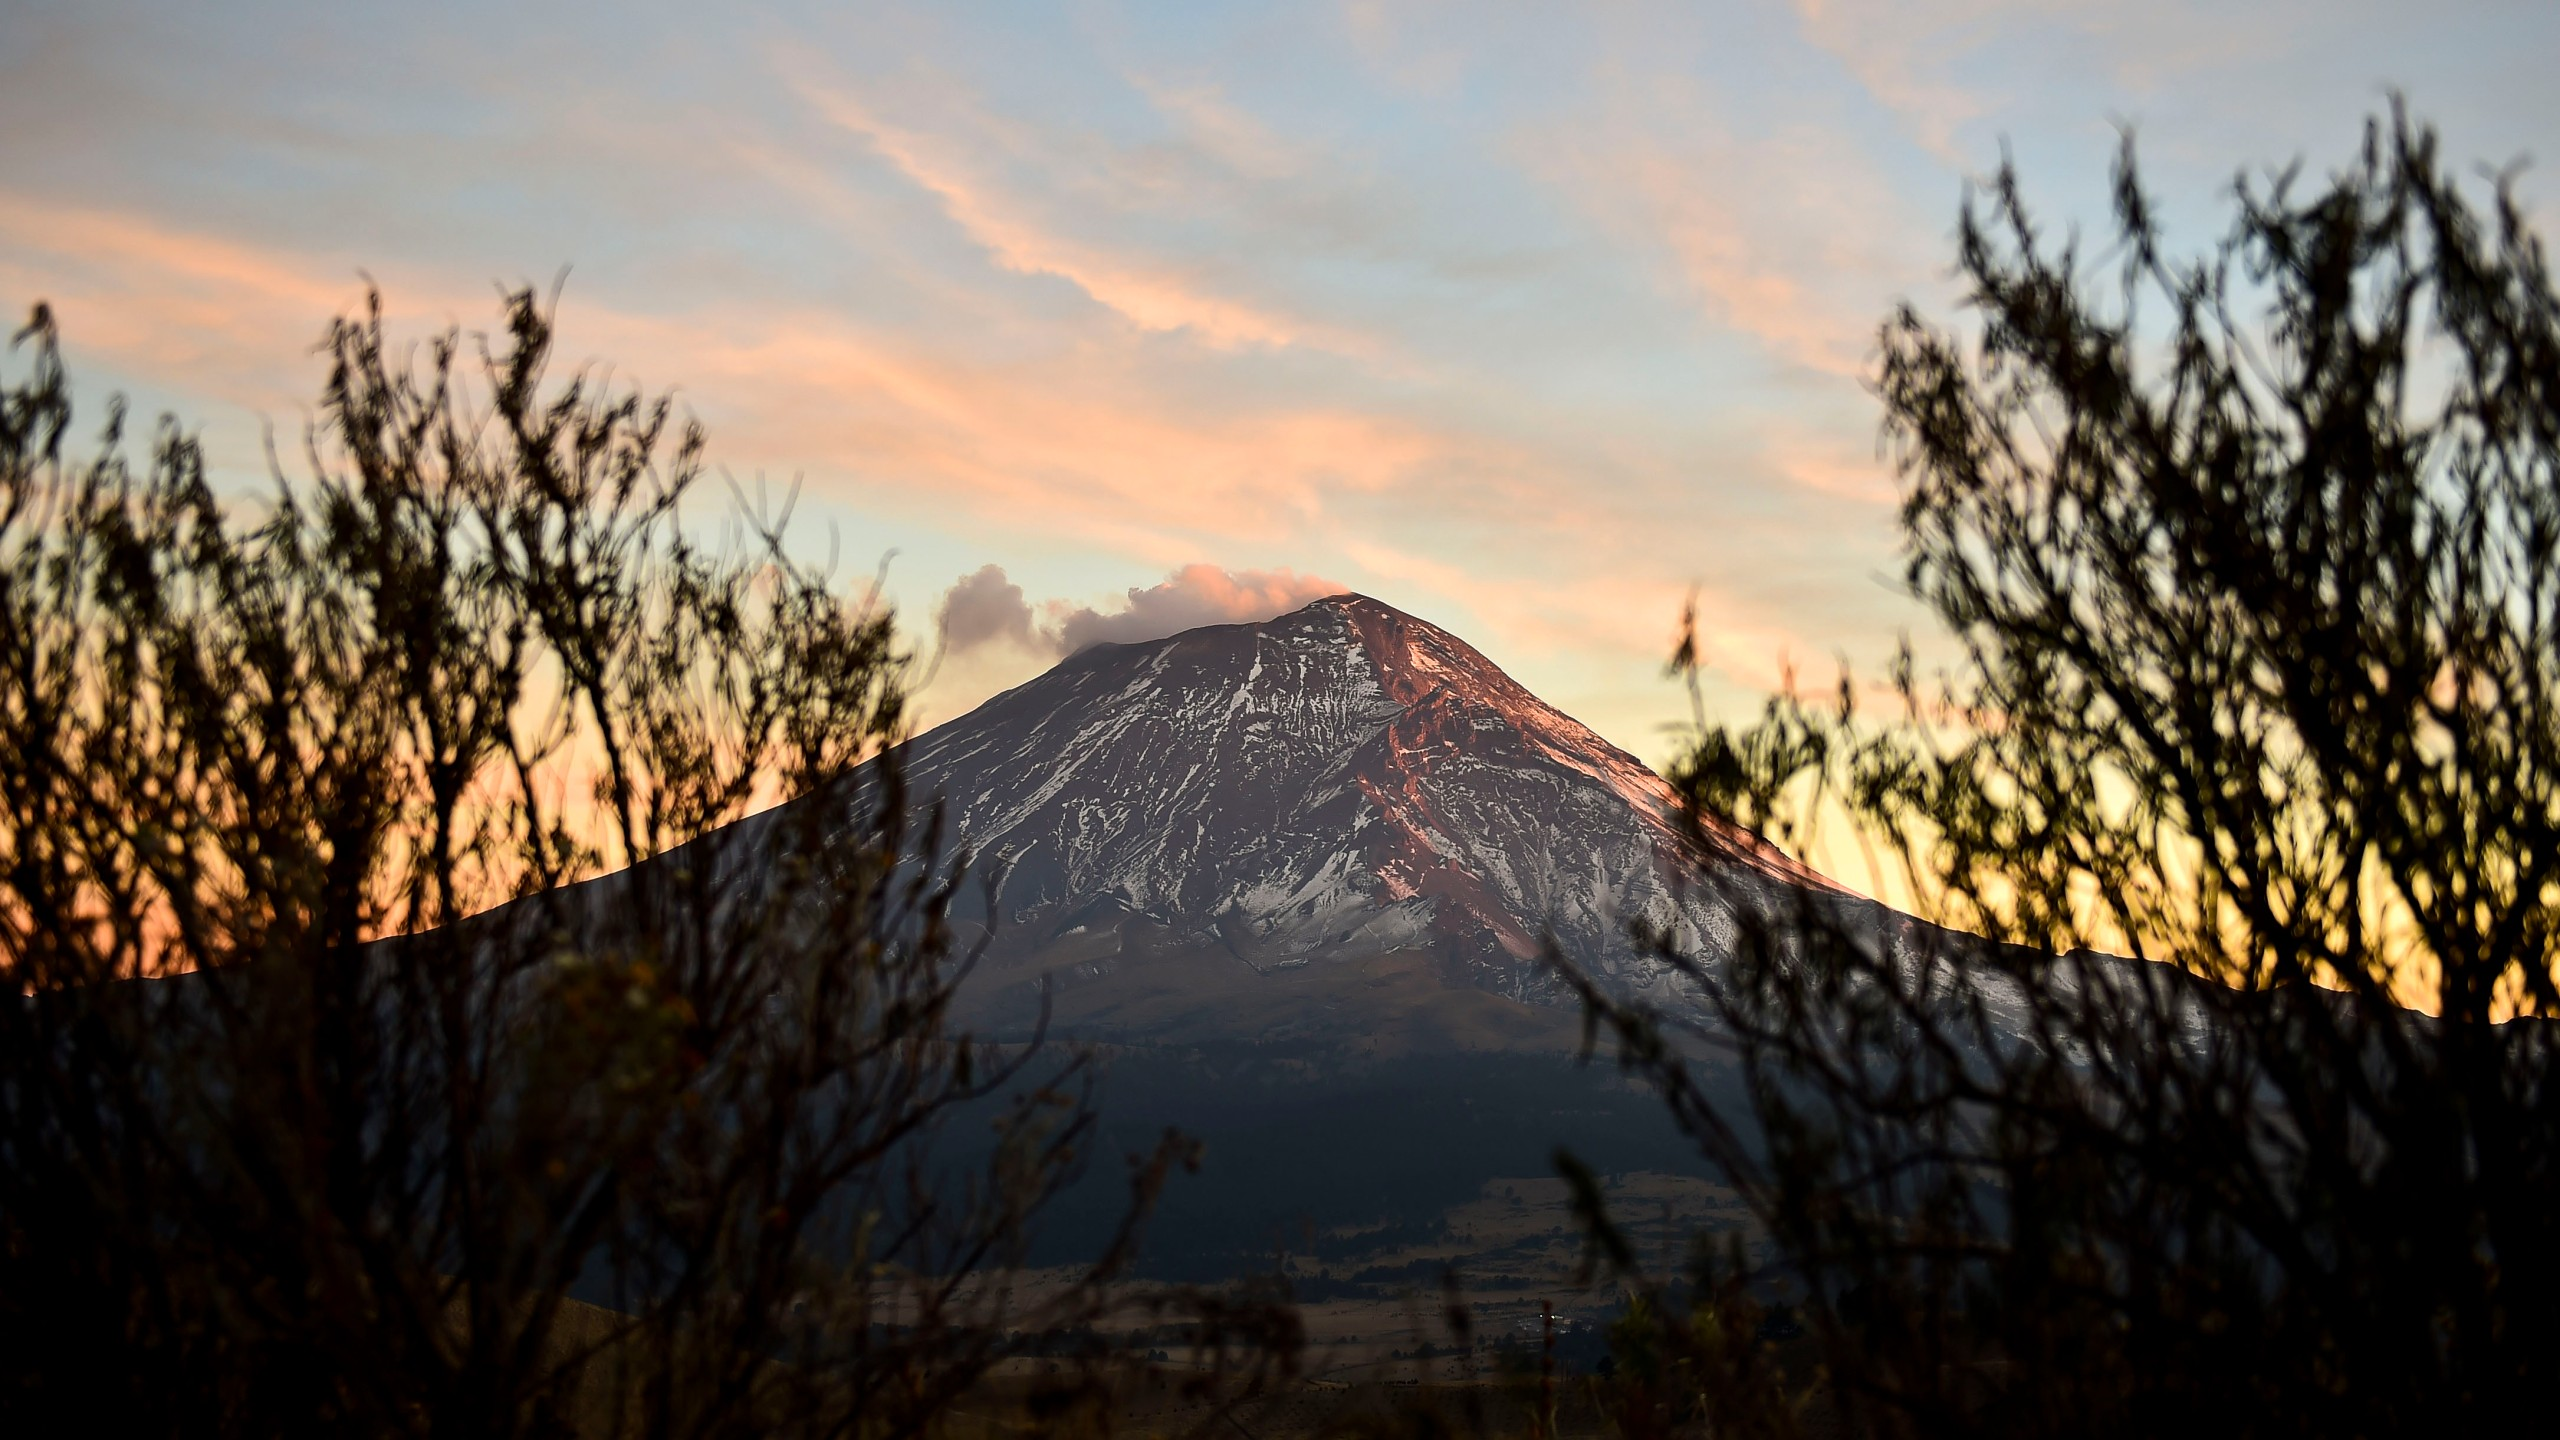 A cloud of ash and smoke spewed by the Popocatepetl Volcano photographed from the Izta-Popo National Park, in the central Mexican state of Puebla, on Jan. 31, 2016. (Credit: Ronaldo Schemidt / AFP / Getty Images)